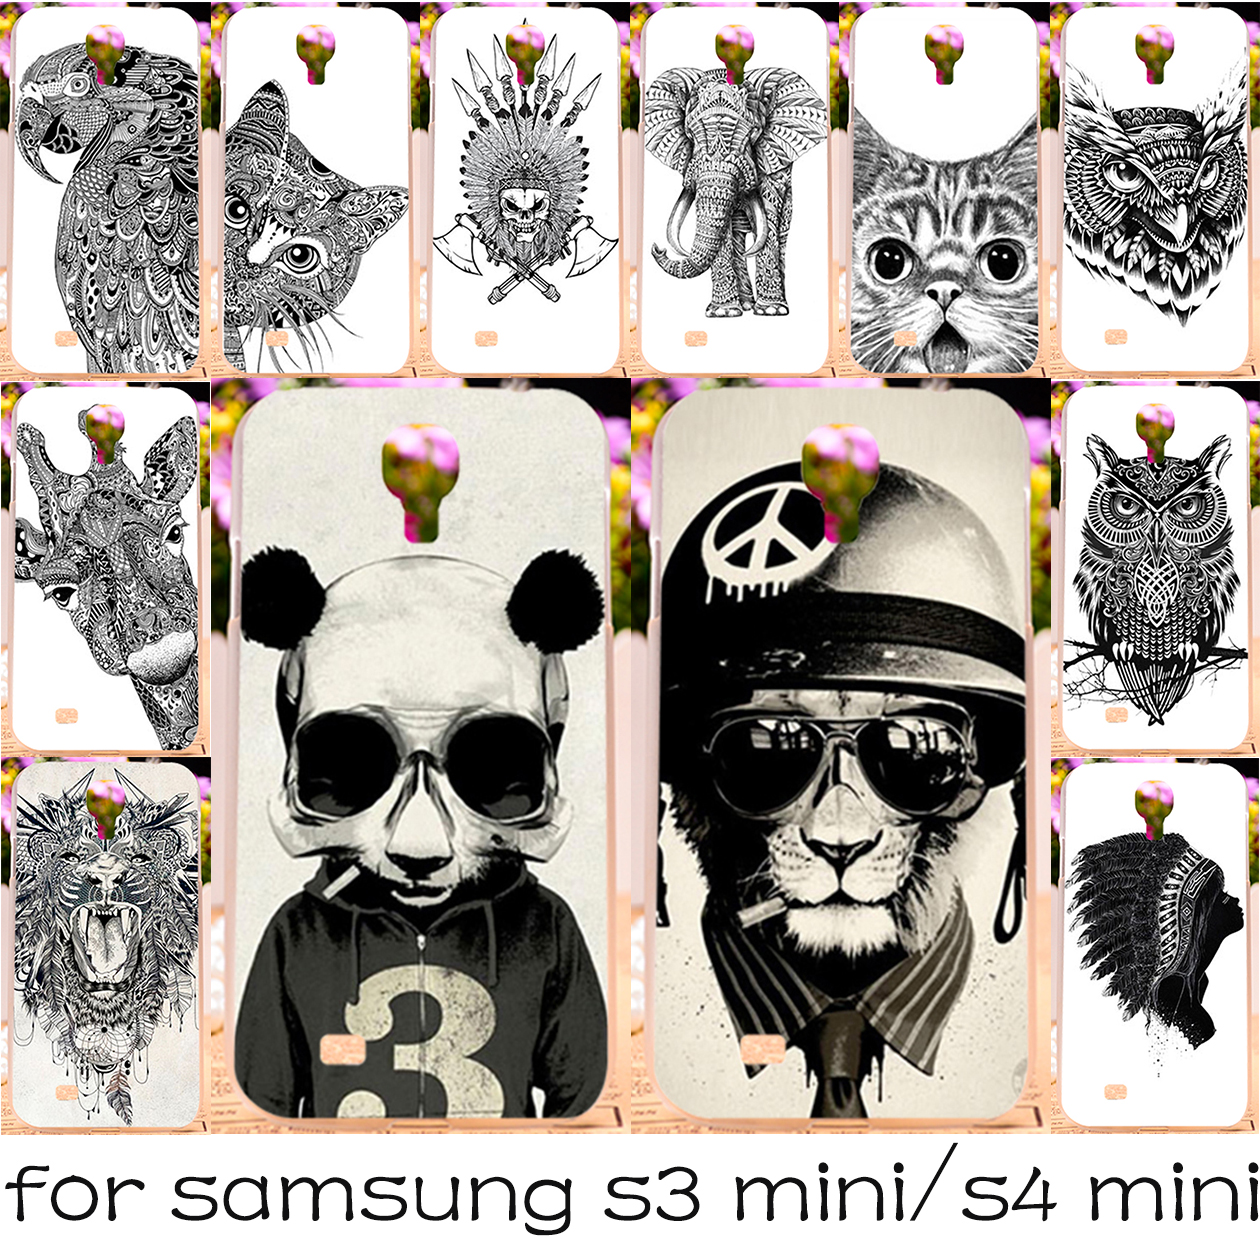 Silicon OR Plastic Phone Case Samsung Galaxy I8190 S3 mini 8190 4.0''/I9190 S4 GA009 GT-i9190 i9192 9190 4.3'' Cover - TAOYUNXI 3C Products Store store